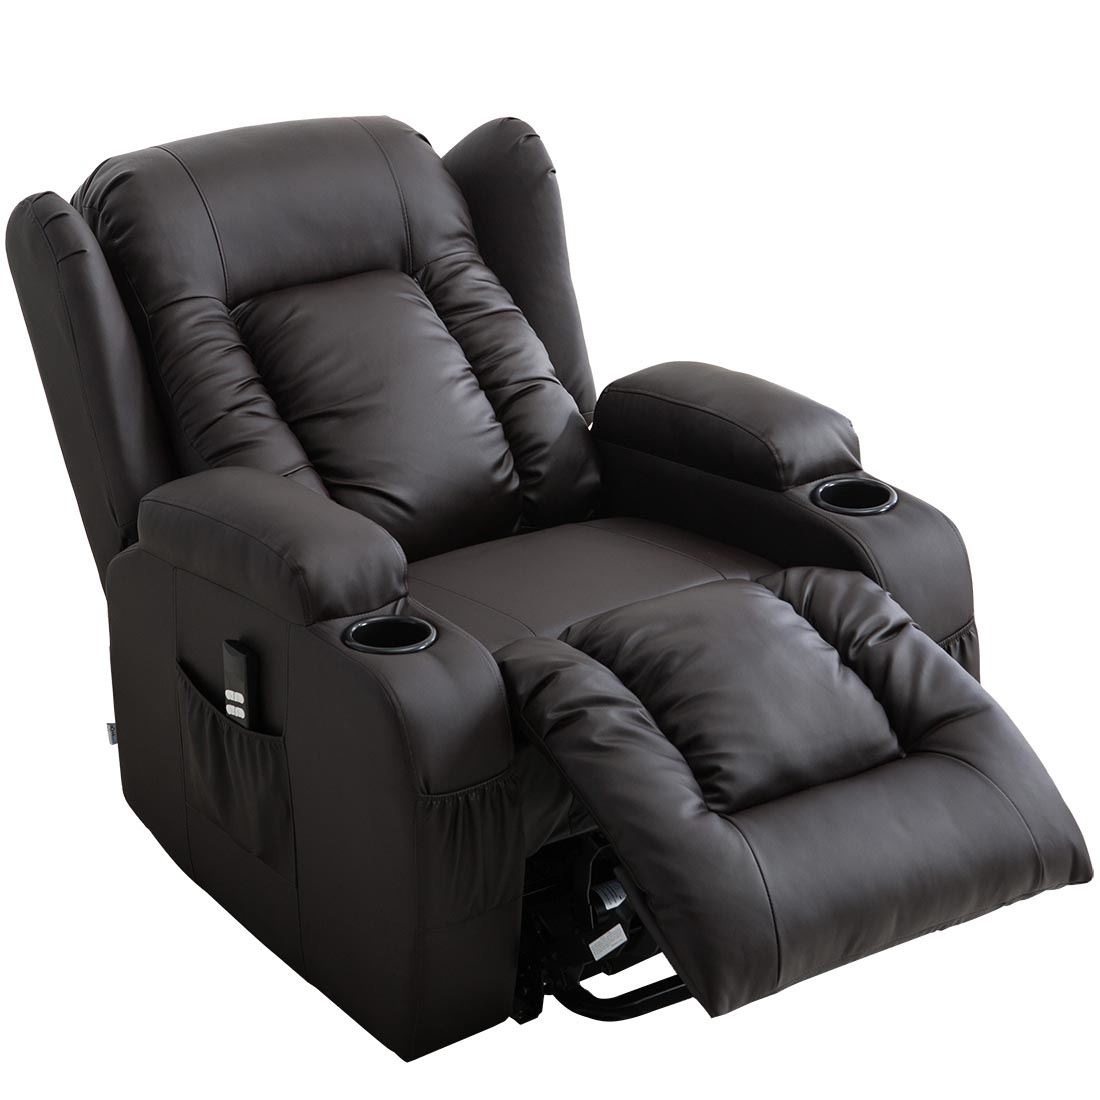 CAESAR-DUAL-MOTOR-RISER-RECLINER-LEATHER-MOBILITY-ARMCHAIR-MASSAGE-HEATED-CHAIR thumbnail 12